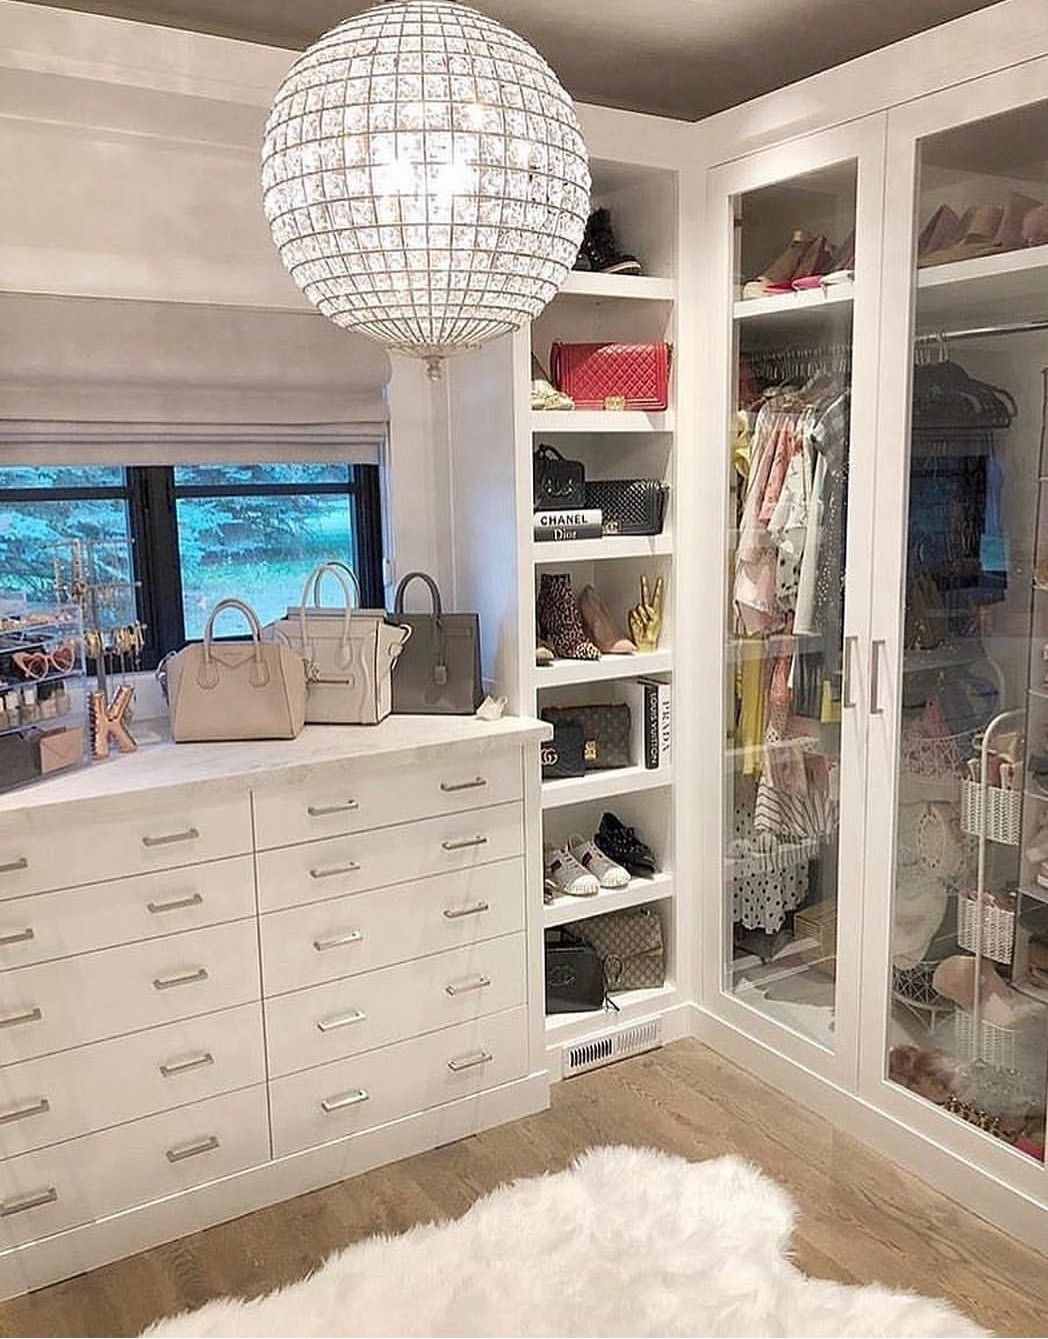 𝒇 ℓℓ 𝒘 Rainmoneyy With Images Dream Closet Design Closet Decor